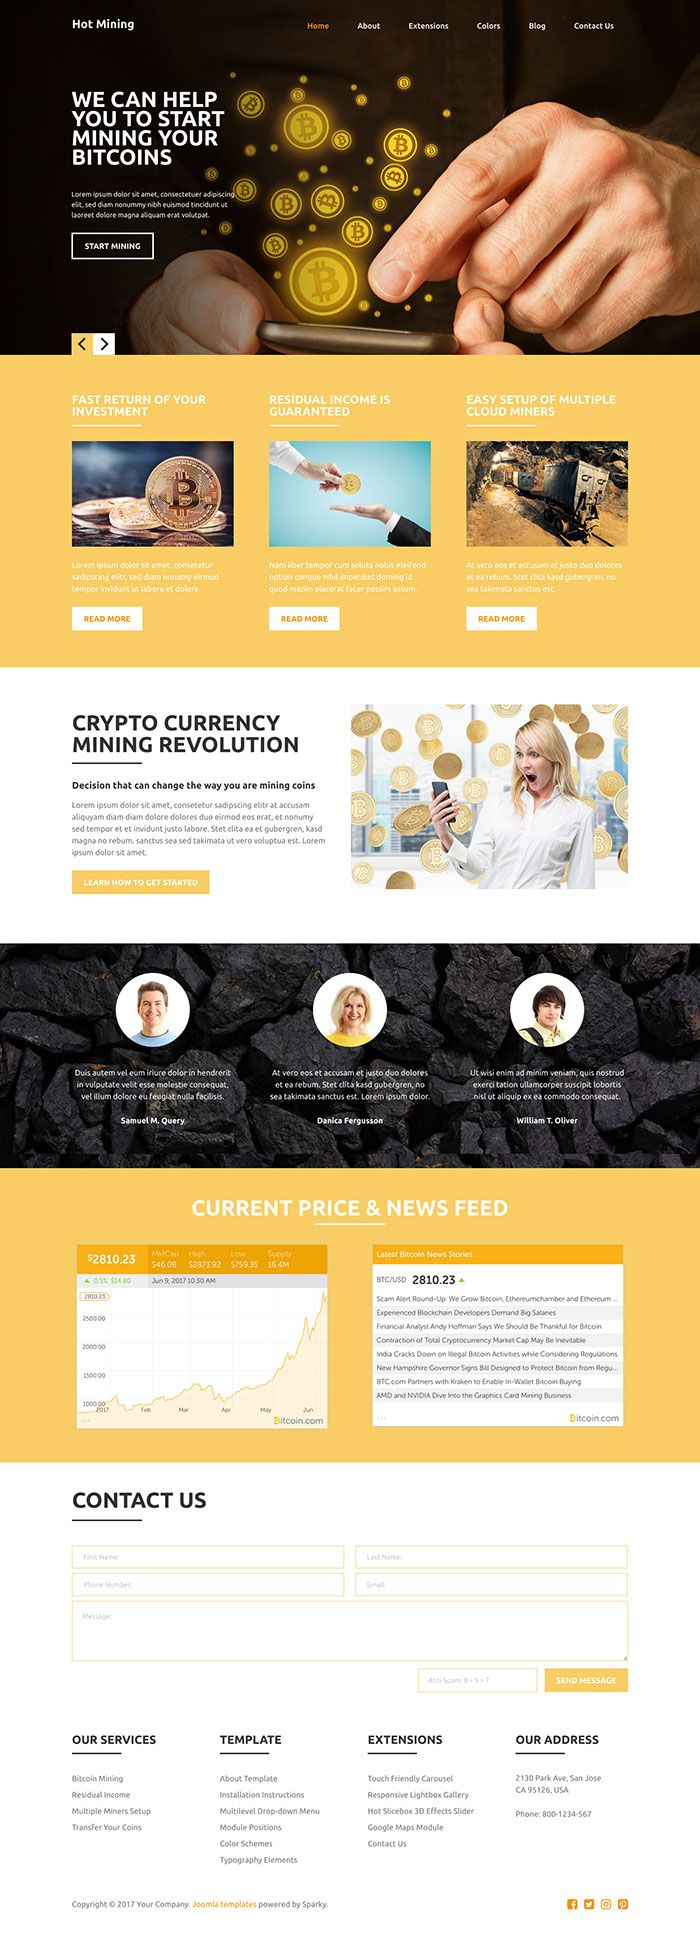 Hot Mining - Joomla Template Screenshot 1